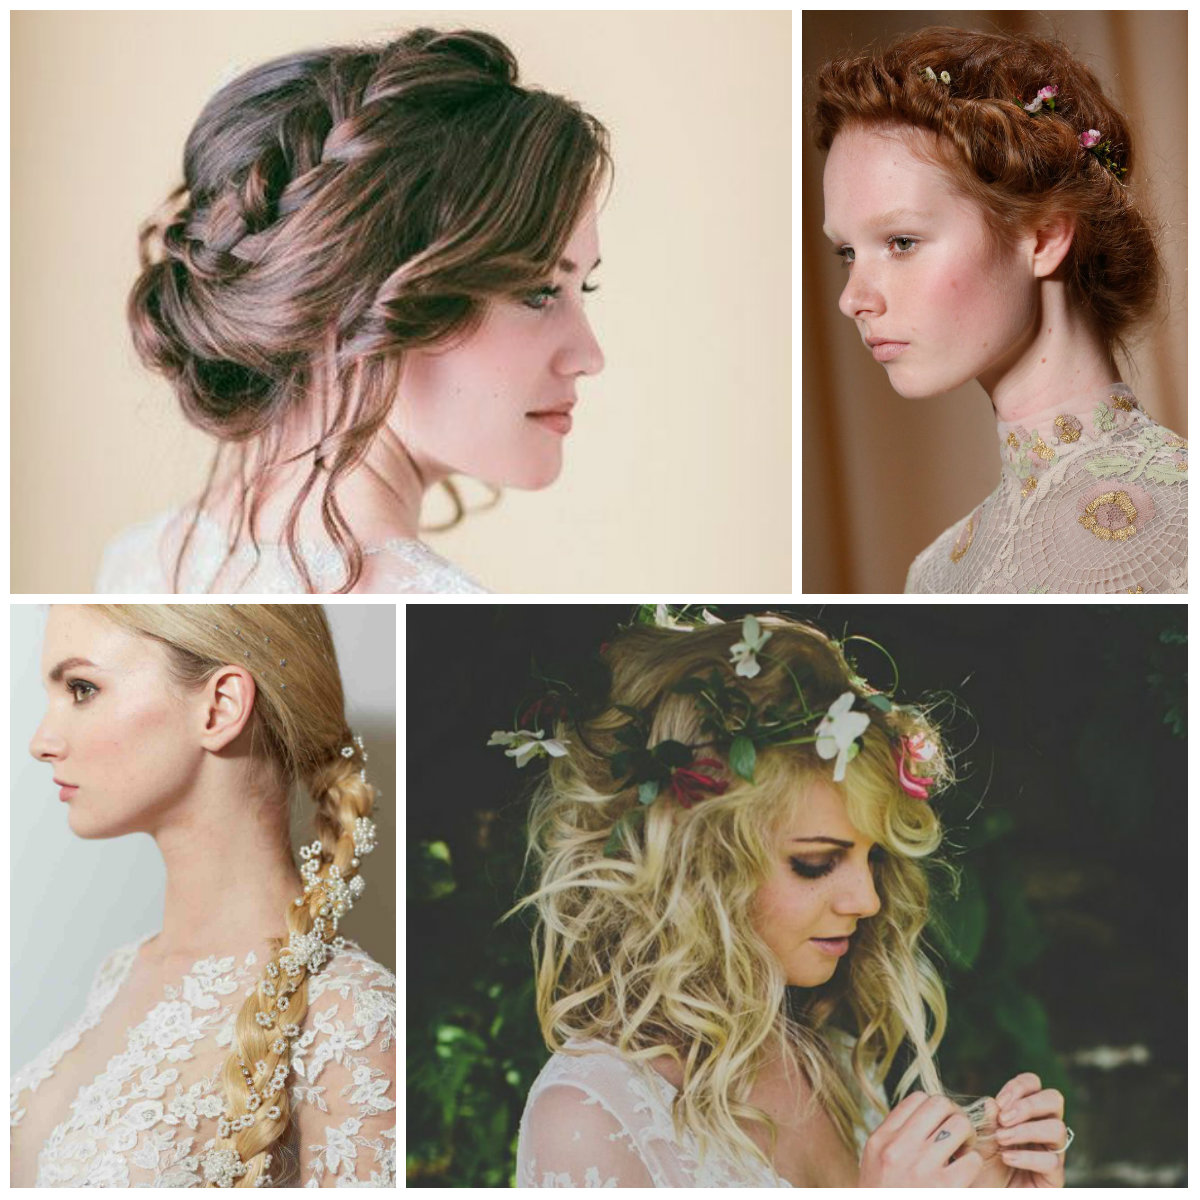 Spring Hairstyles Wedding Hairstyle Trends For 2016 What Do You Think #weddingideas